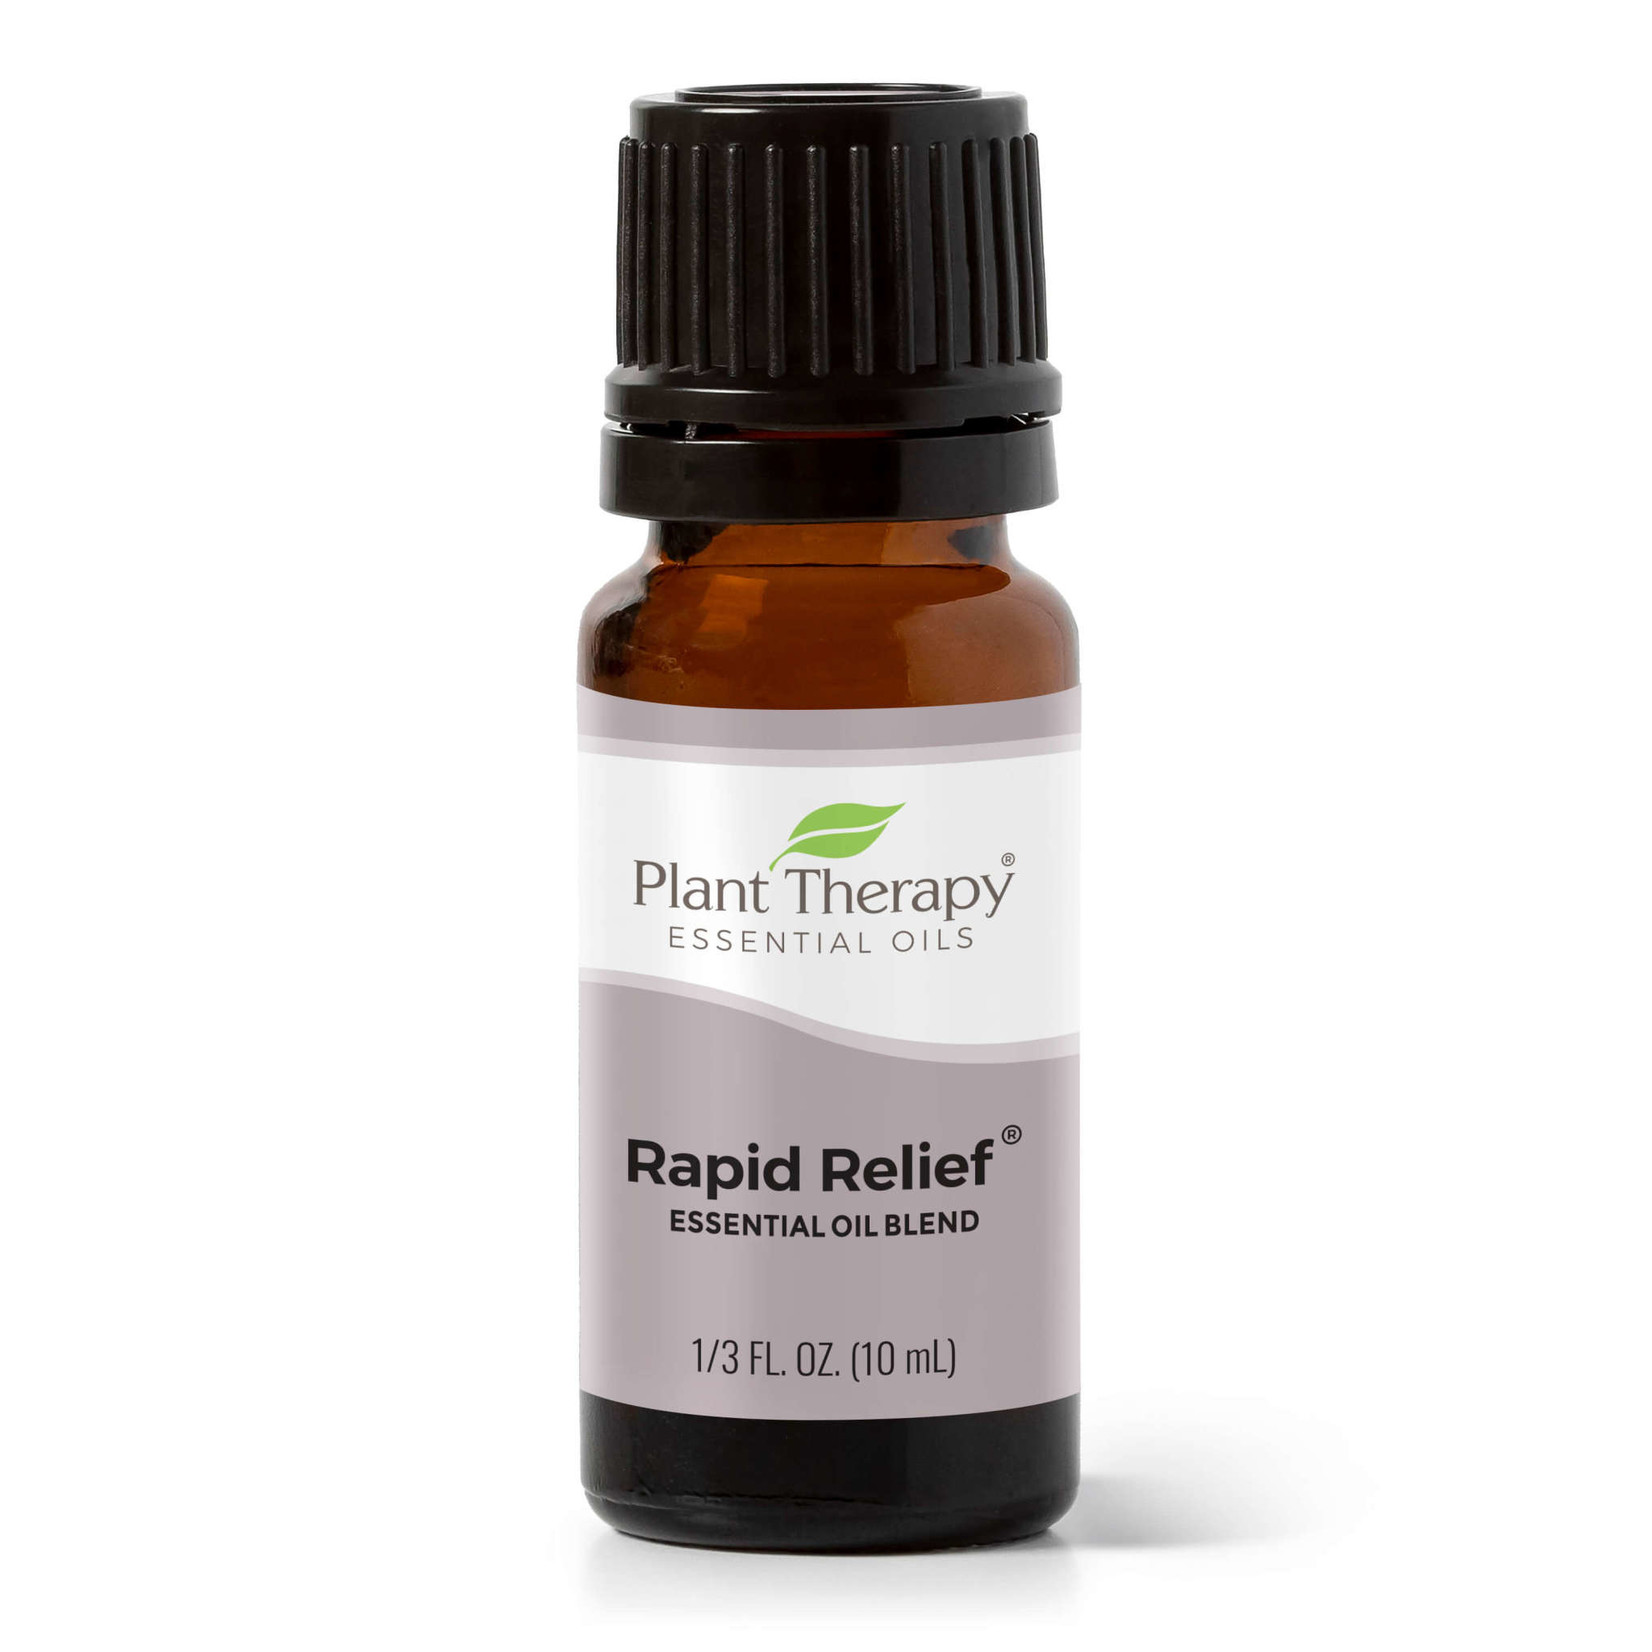 Plant Therapy Essential Oil Single - Rapid Relief